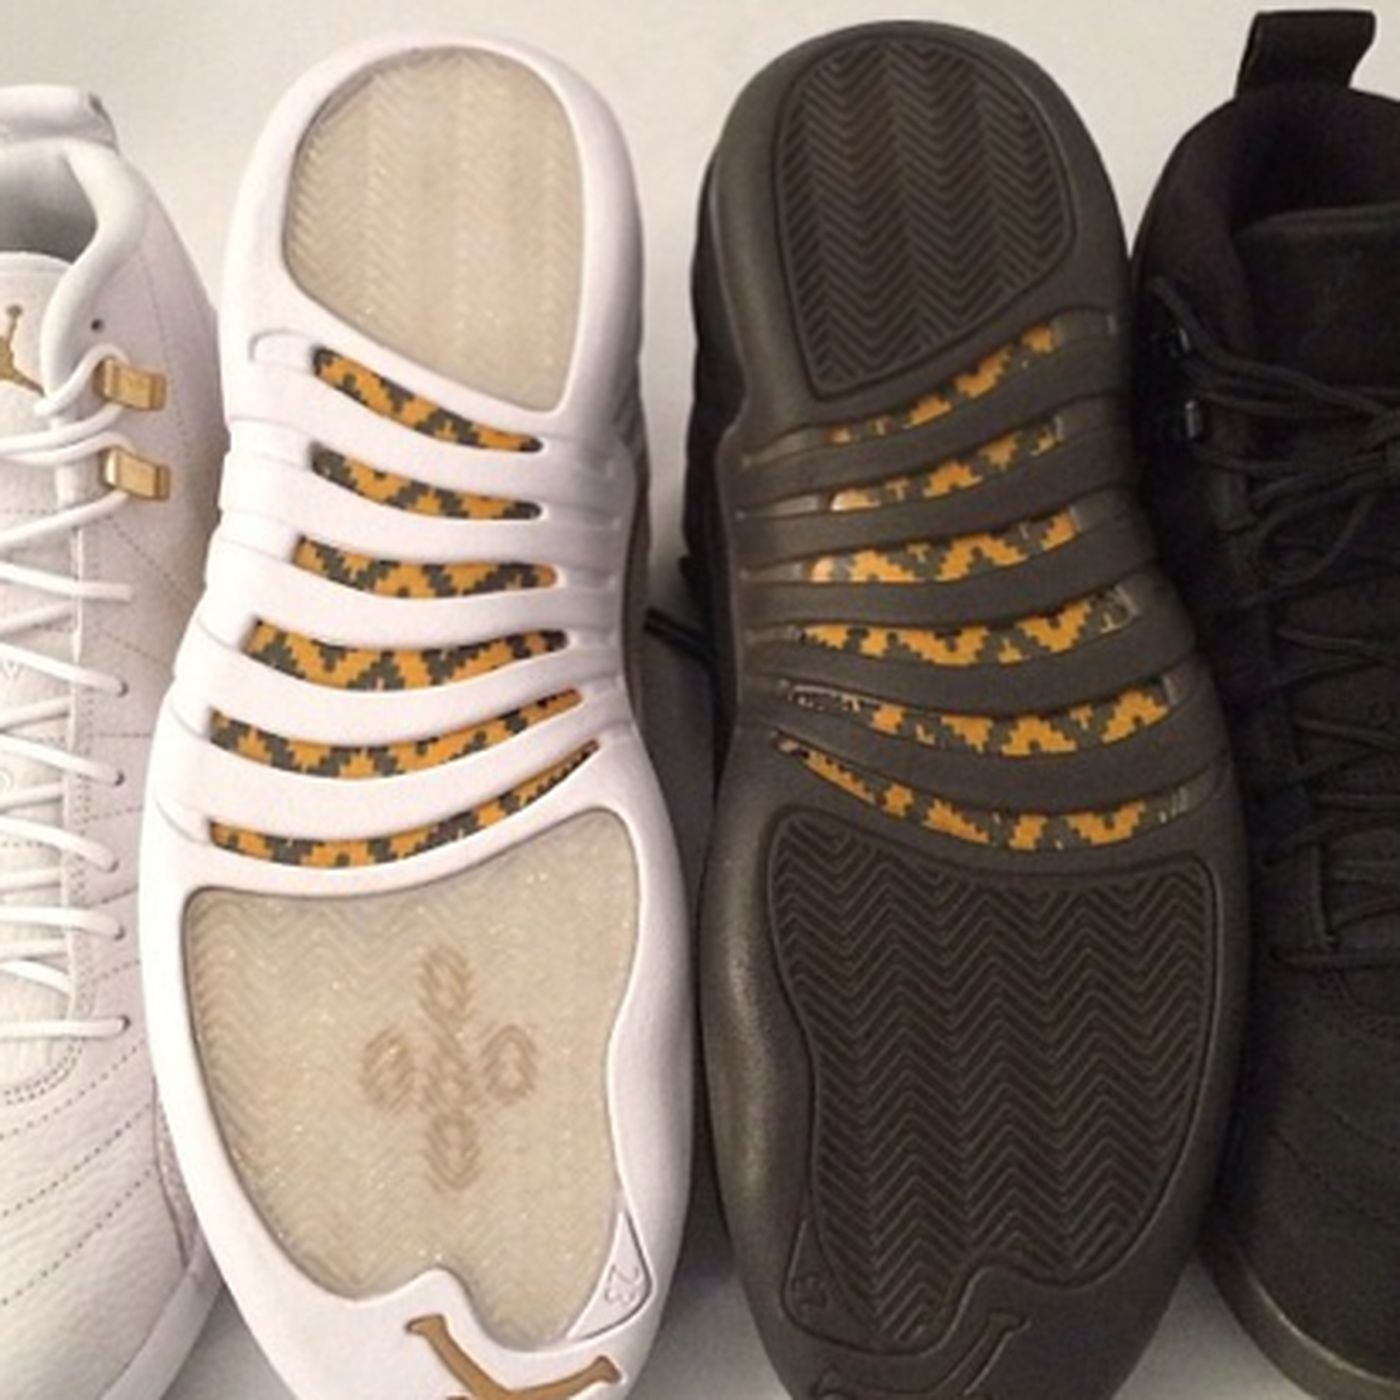 c945f9c3830f Drake Is Nike s Replacement Kanye - Racked